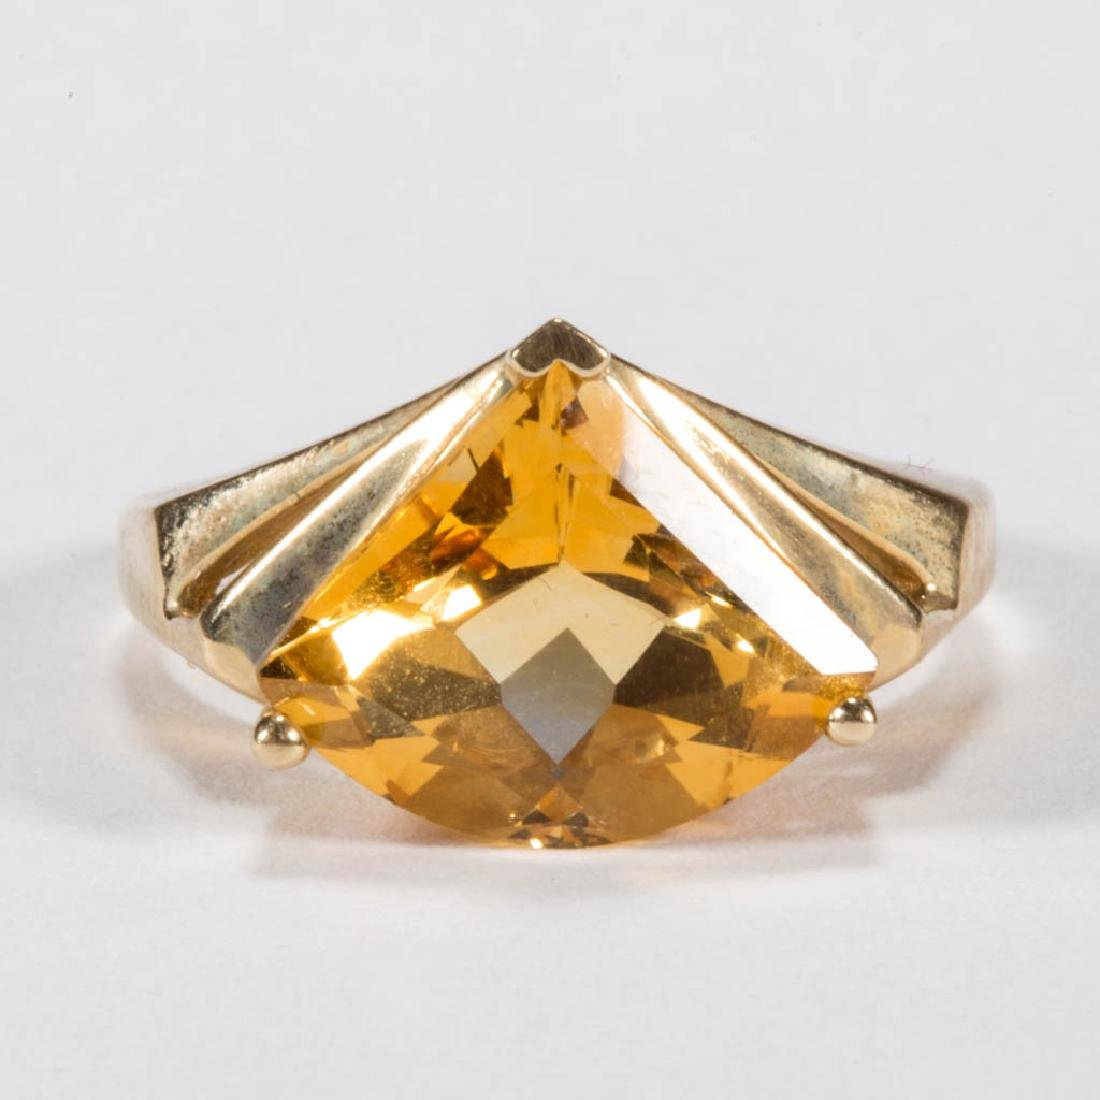 VINTAGE 14K GOLD AND CITRINE LADY'S RING